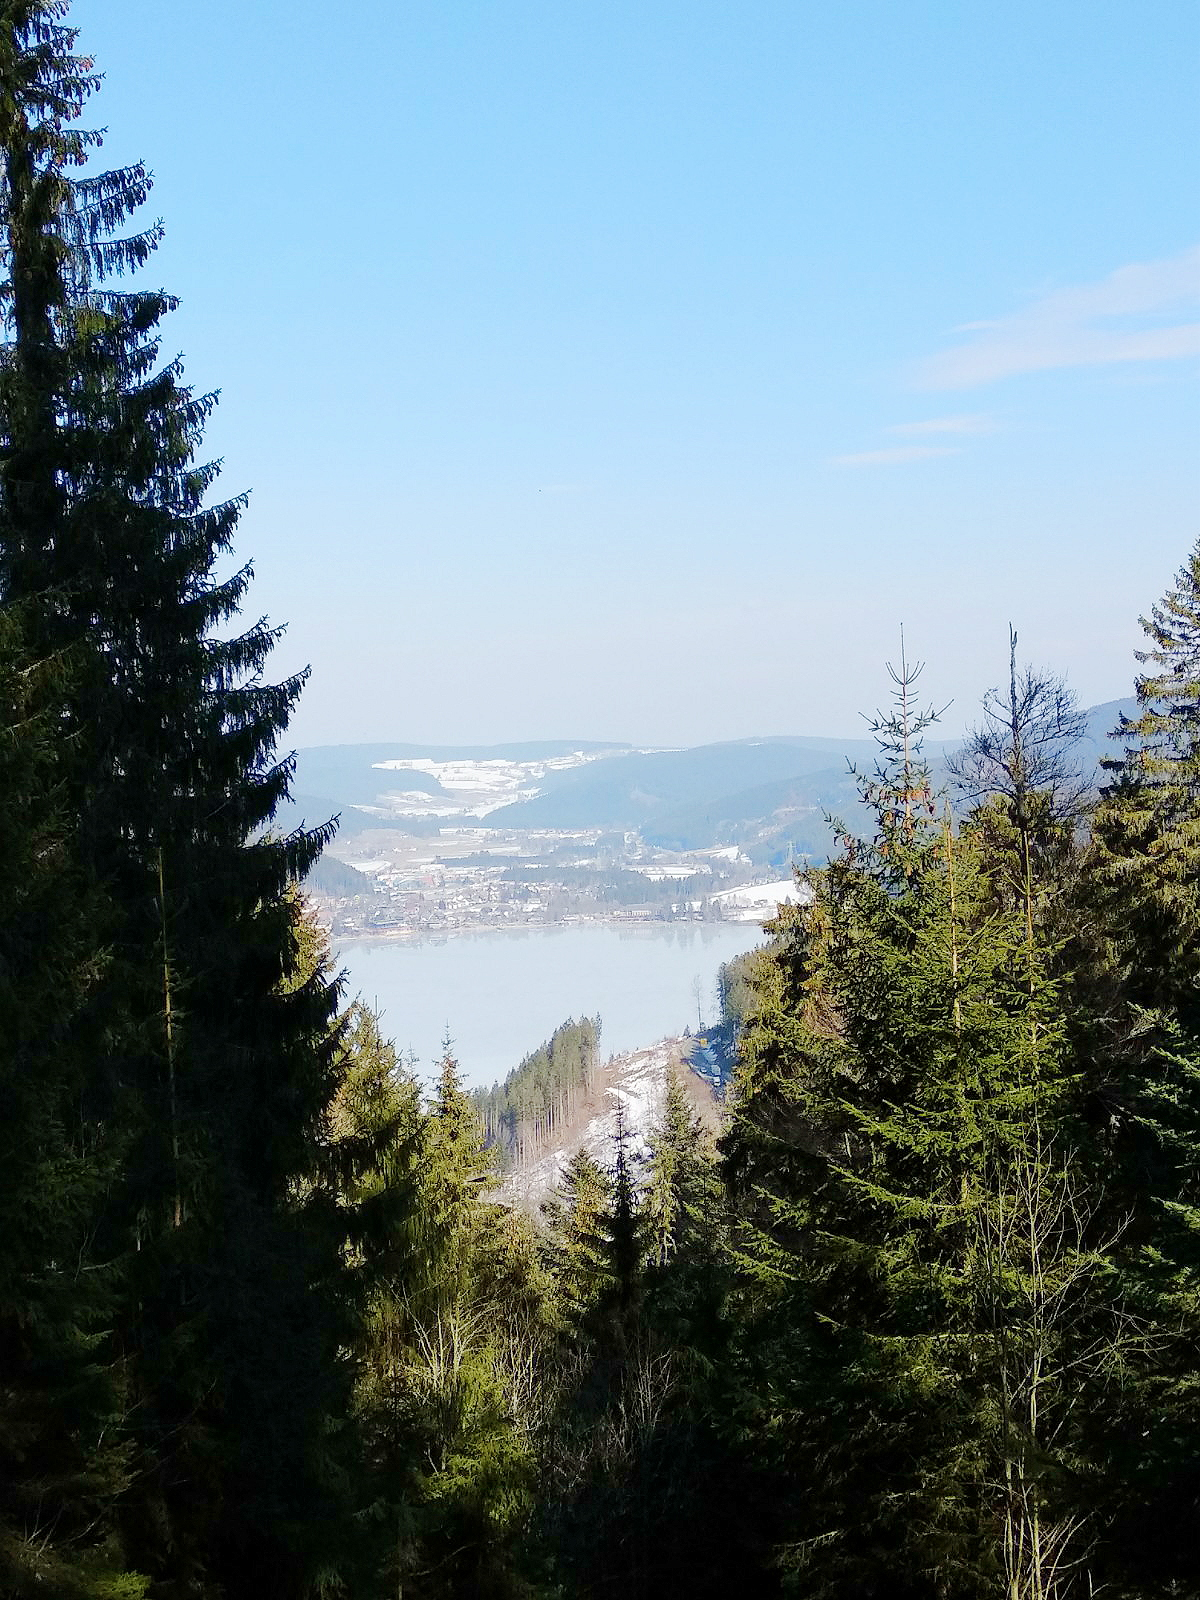 Spaziergang im Wald: Der Titisee Blick